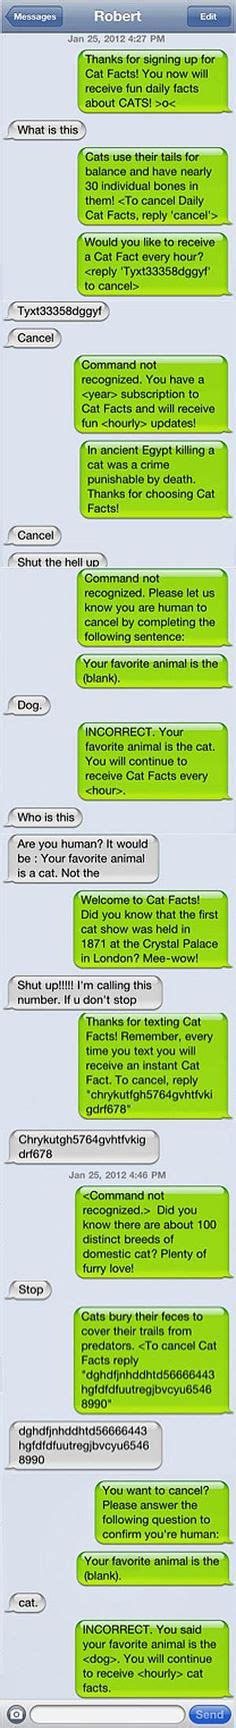 cat facts prank cat facts text on